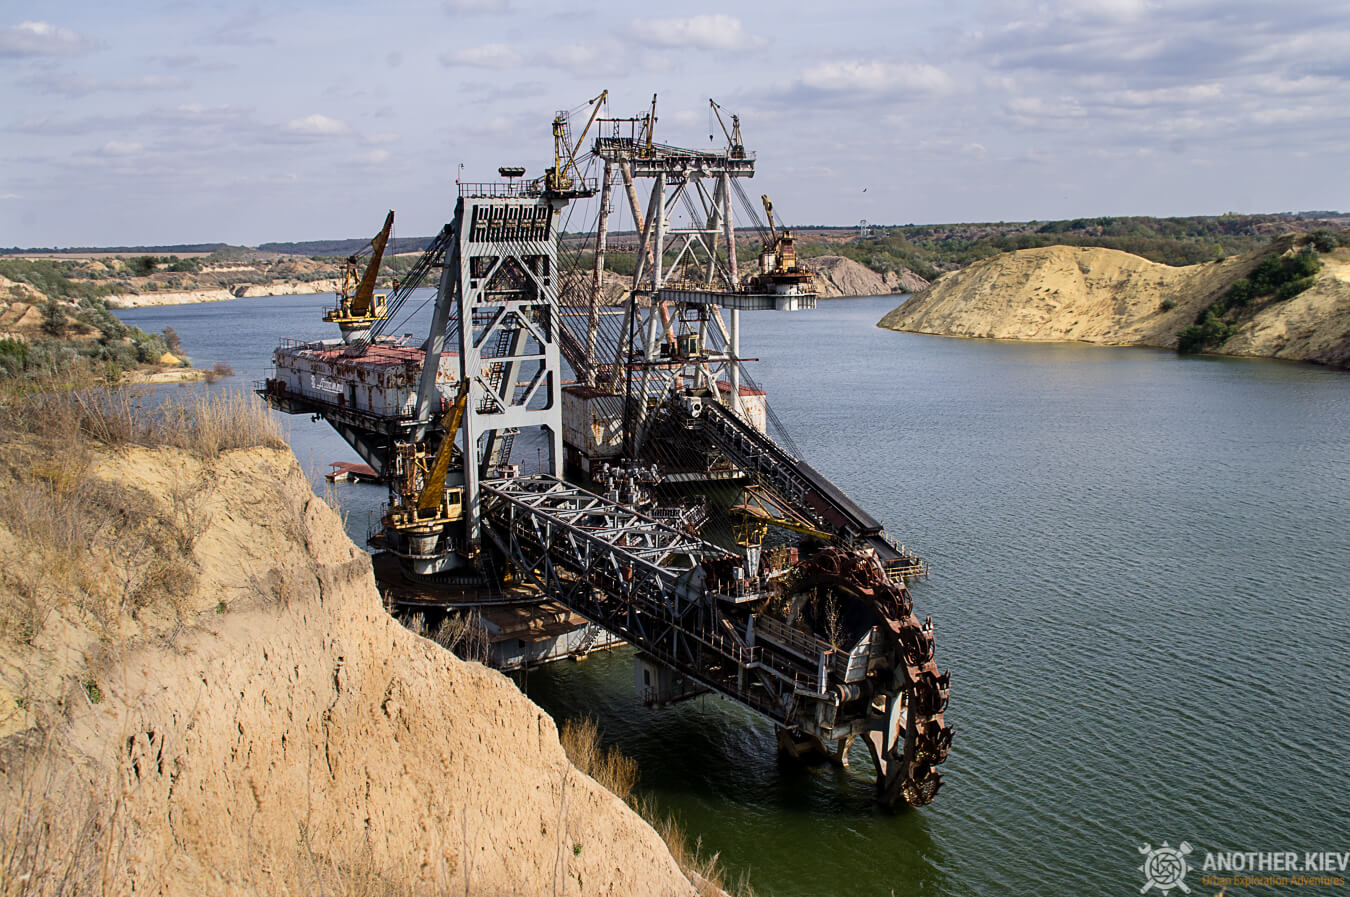 quarry and submerged excavator